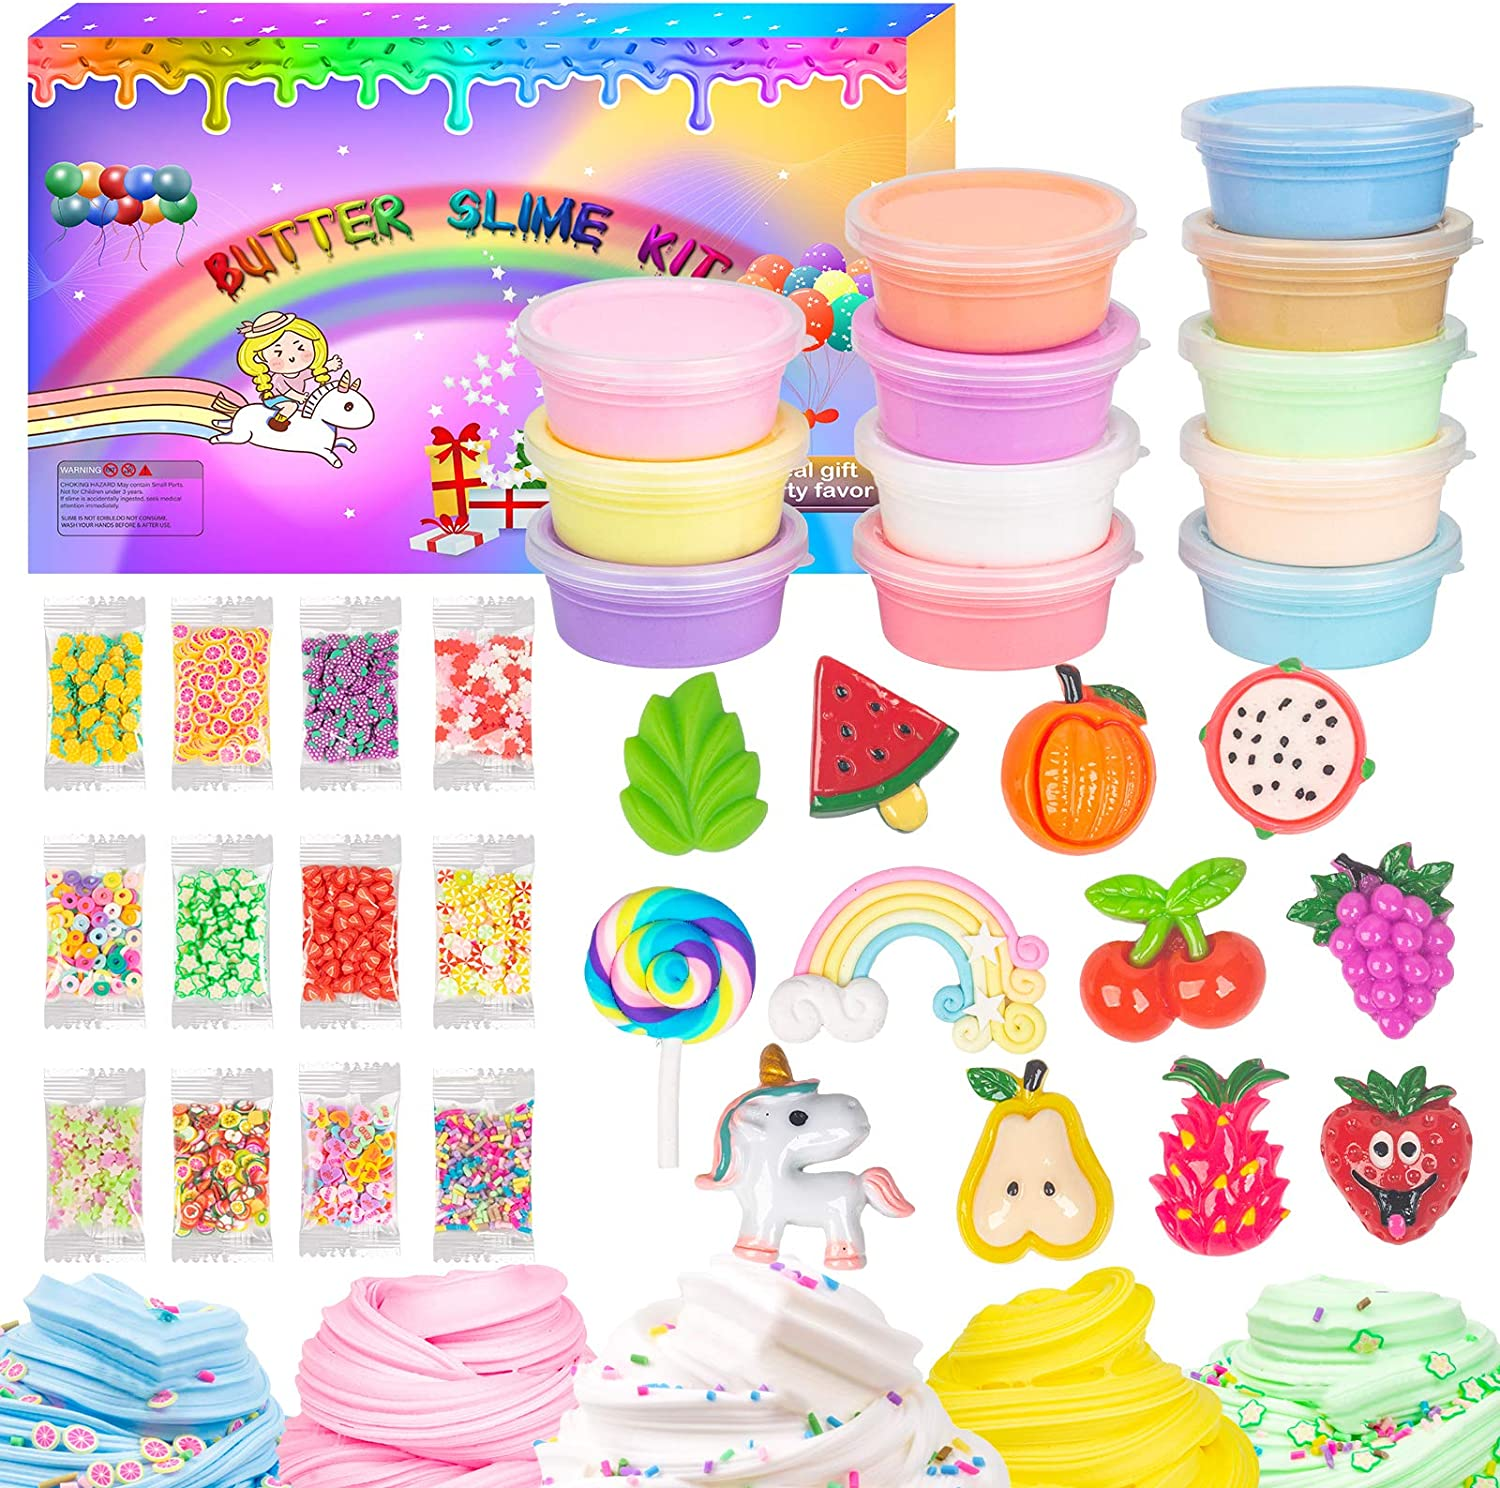 WUJYLY 12 Pack Butter Slime Kit for Girls Boys,12 Pack Colorful Rainbow Slime and So Cute 12 Slime Charms Sprinkles, Soft and Non-Stick,Nice Gift for Kids Birthday Valentine's Day Slime Toy